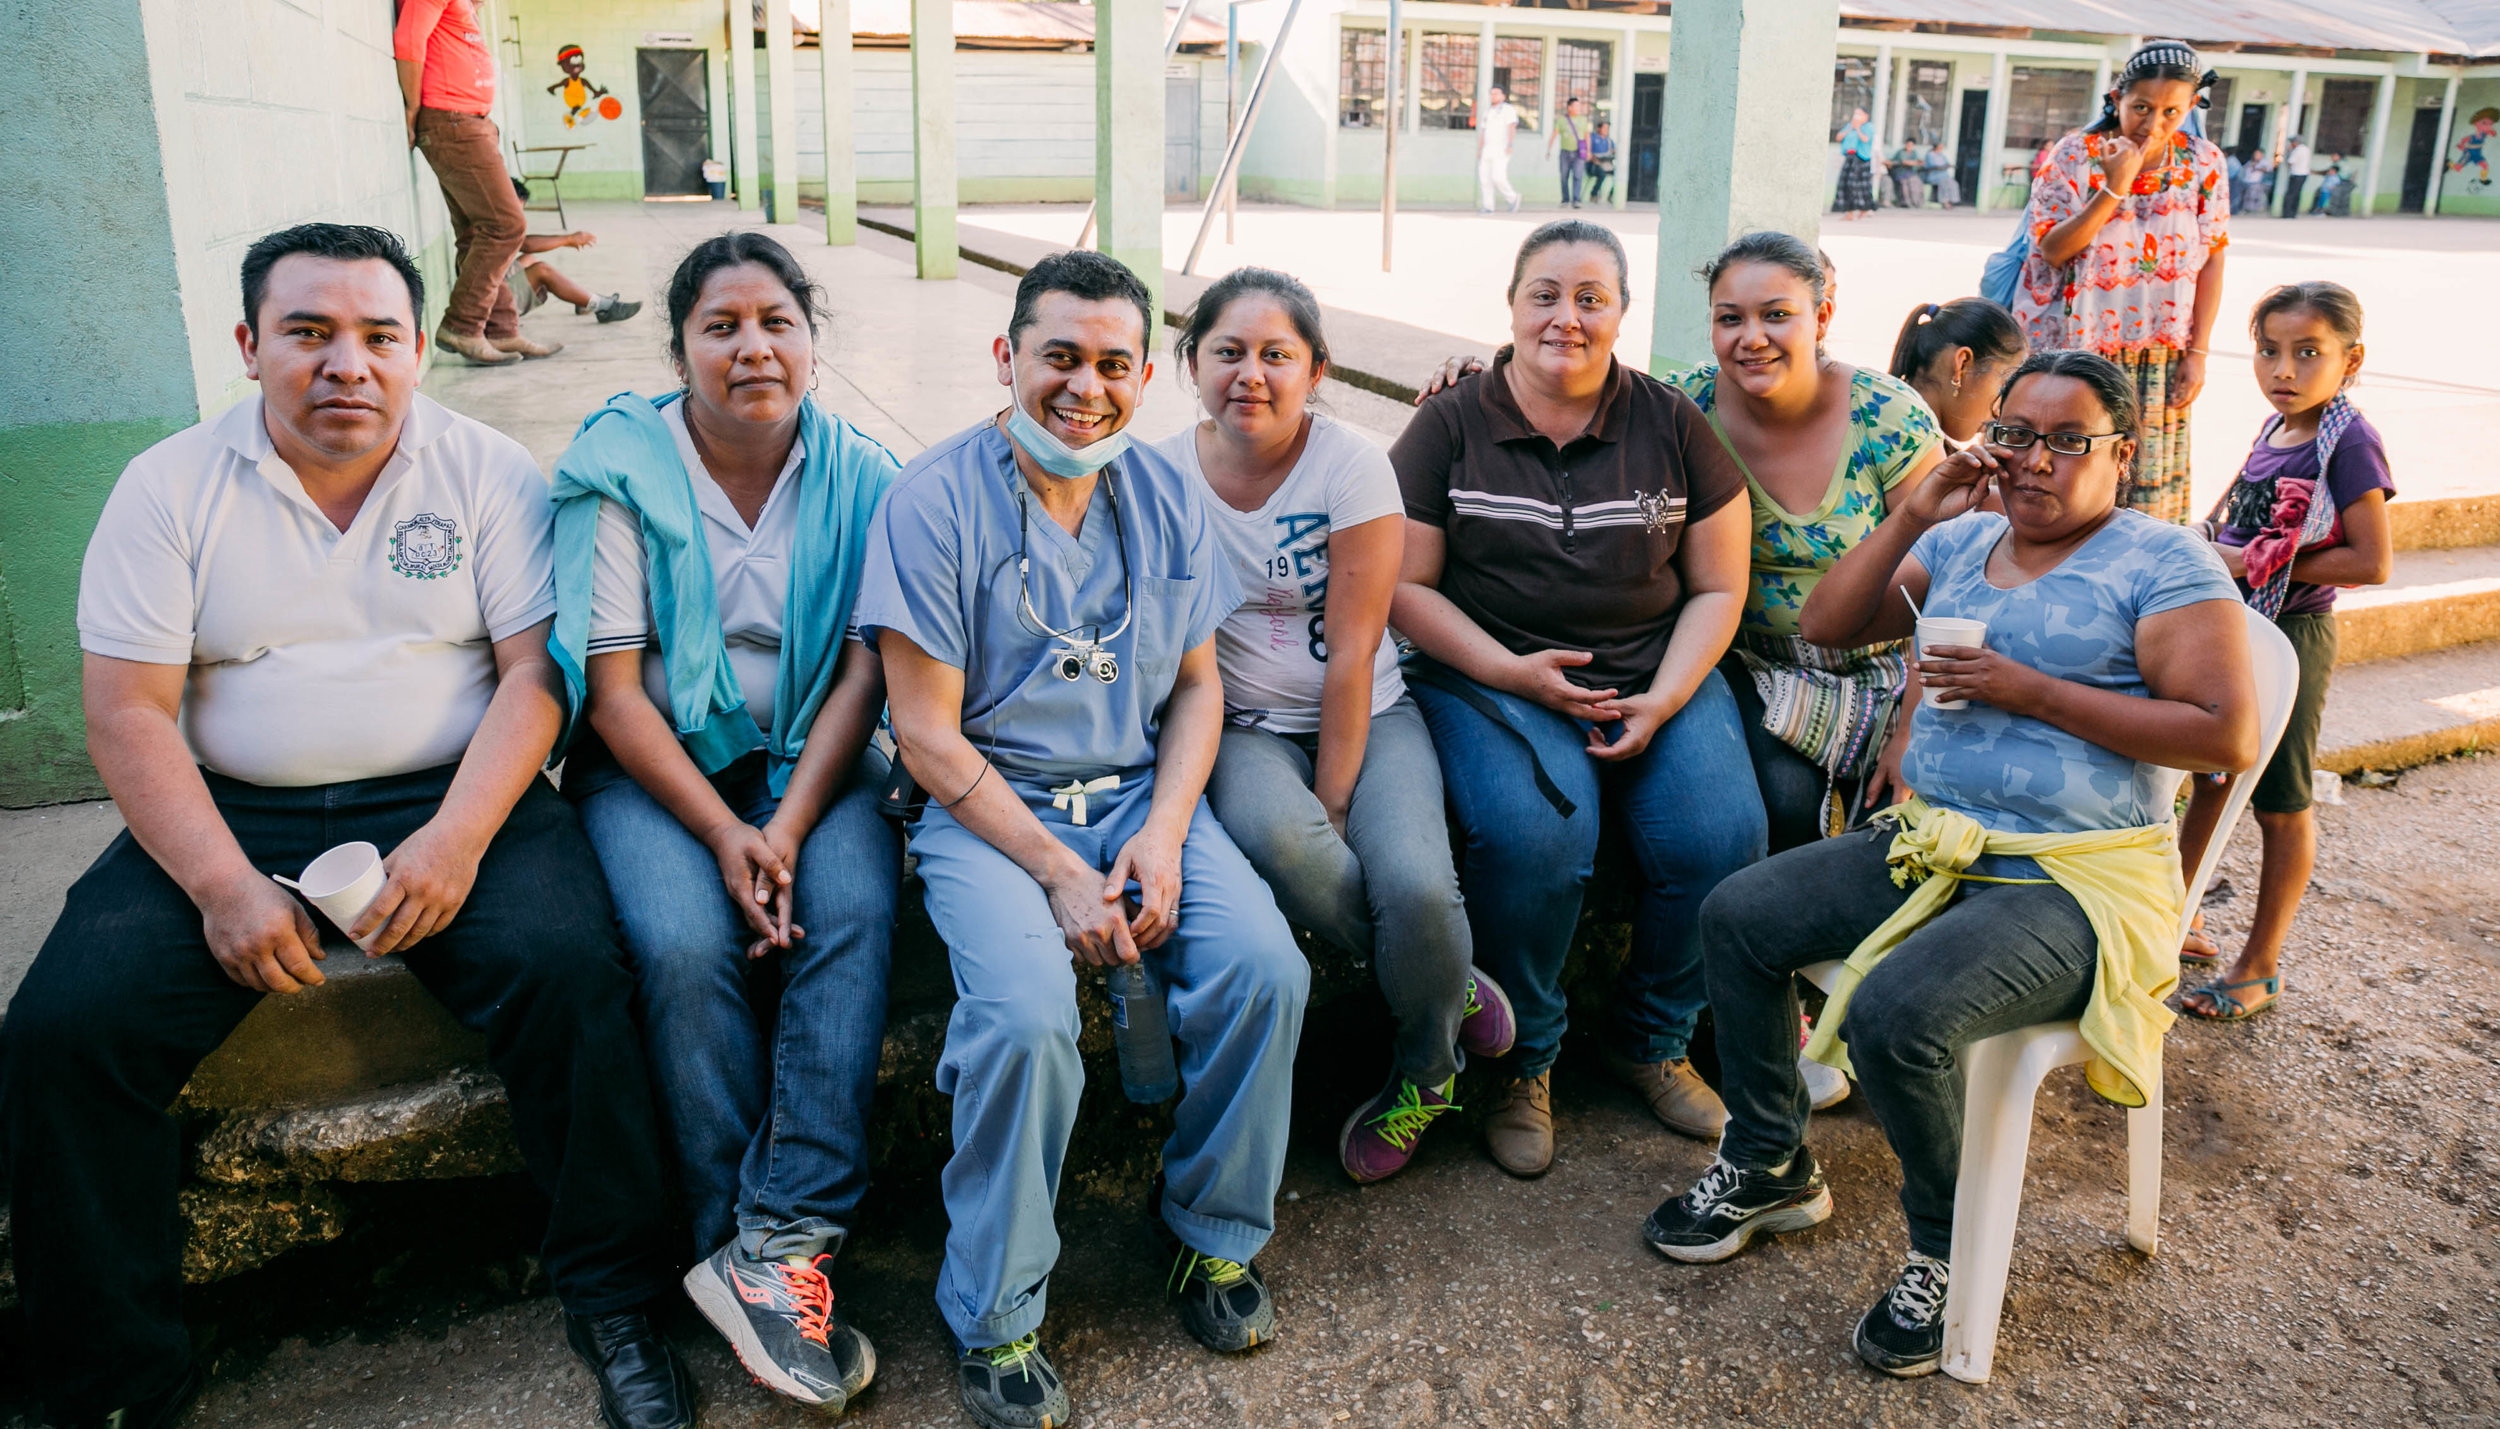 some of the students' parents who helped organize the patients